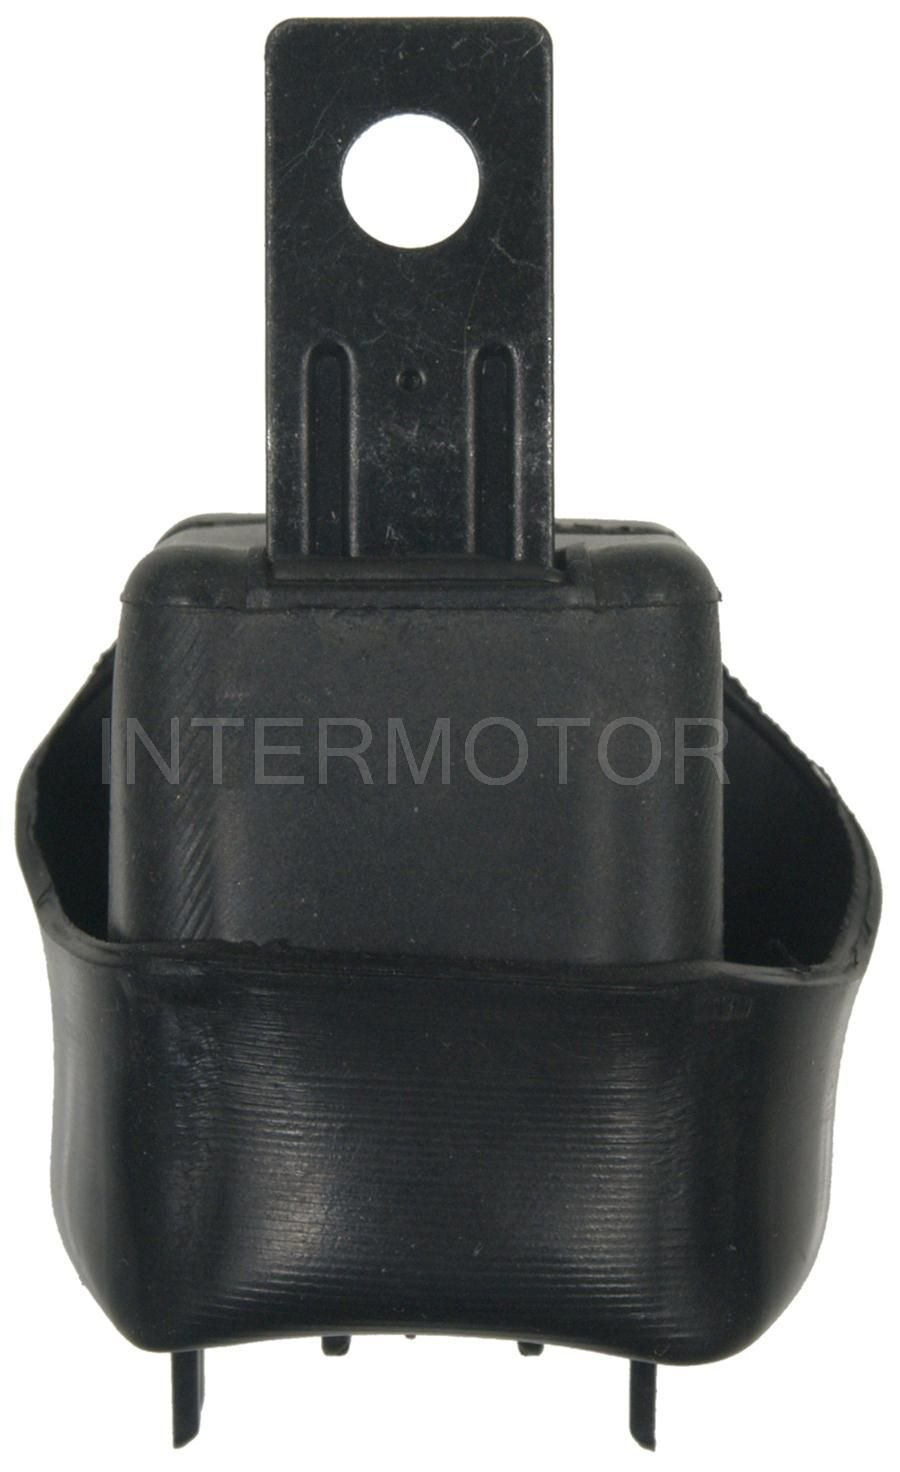 2002 Kia Sportage Starter Relay Standard Ignition Ry 933 Genuine Intermotor Quality